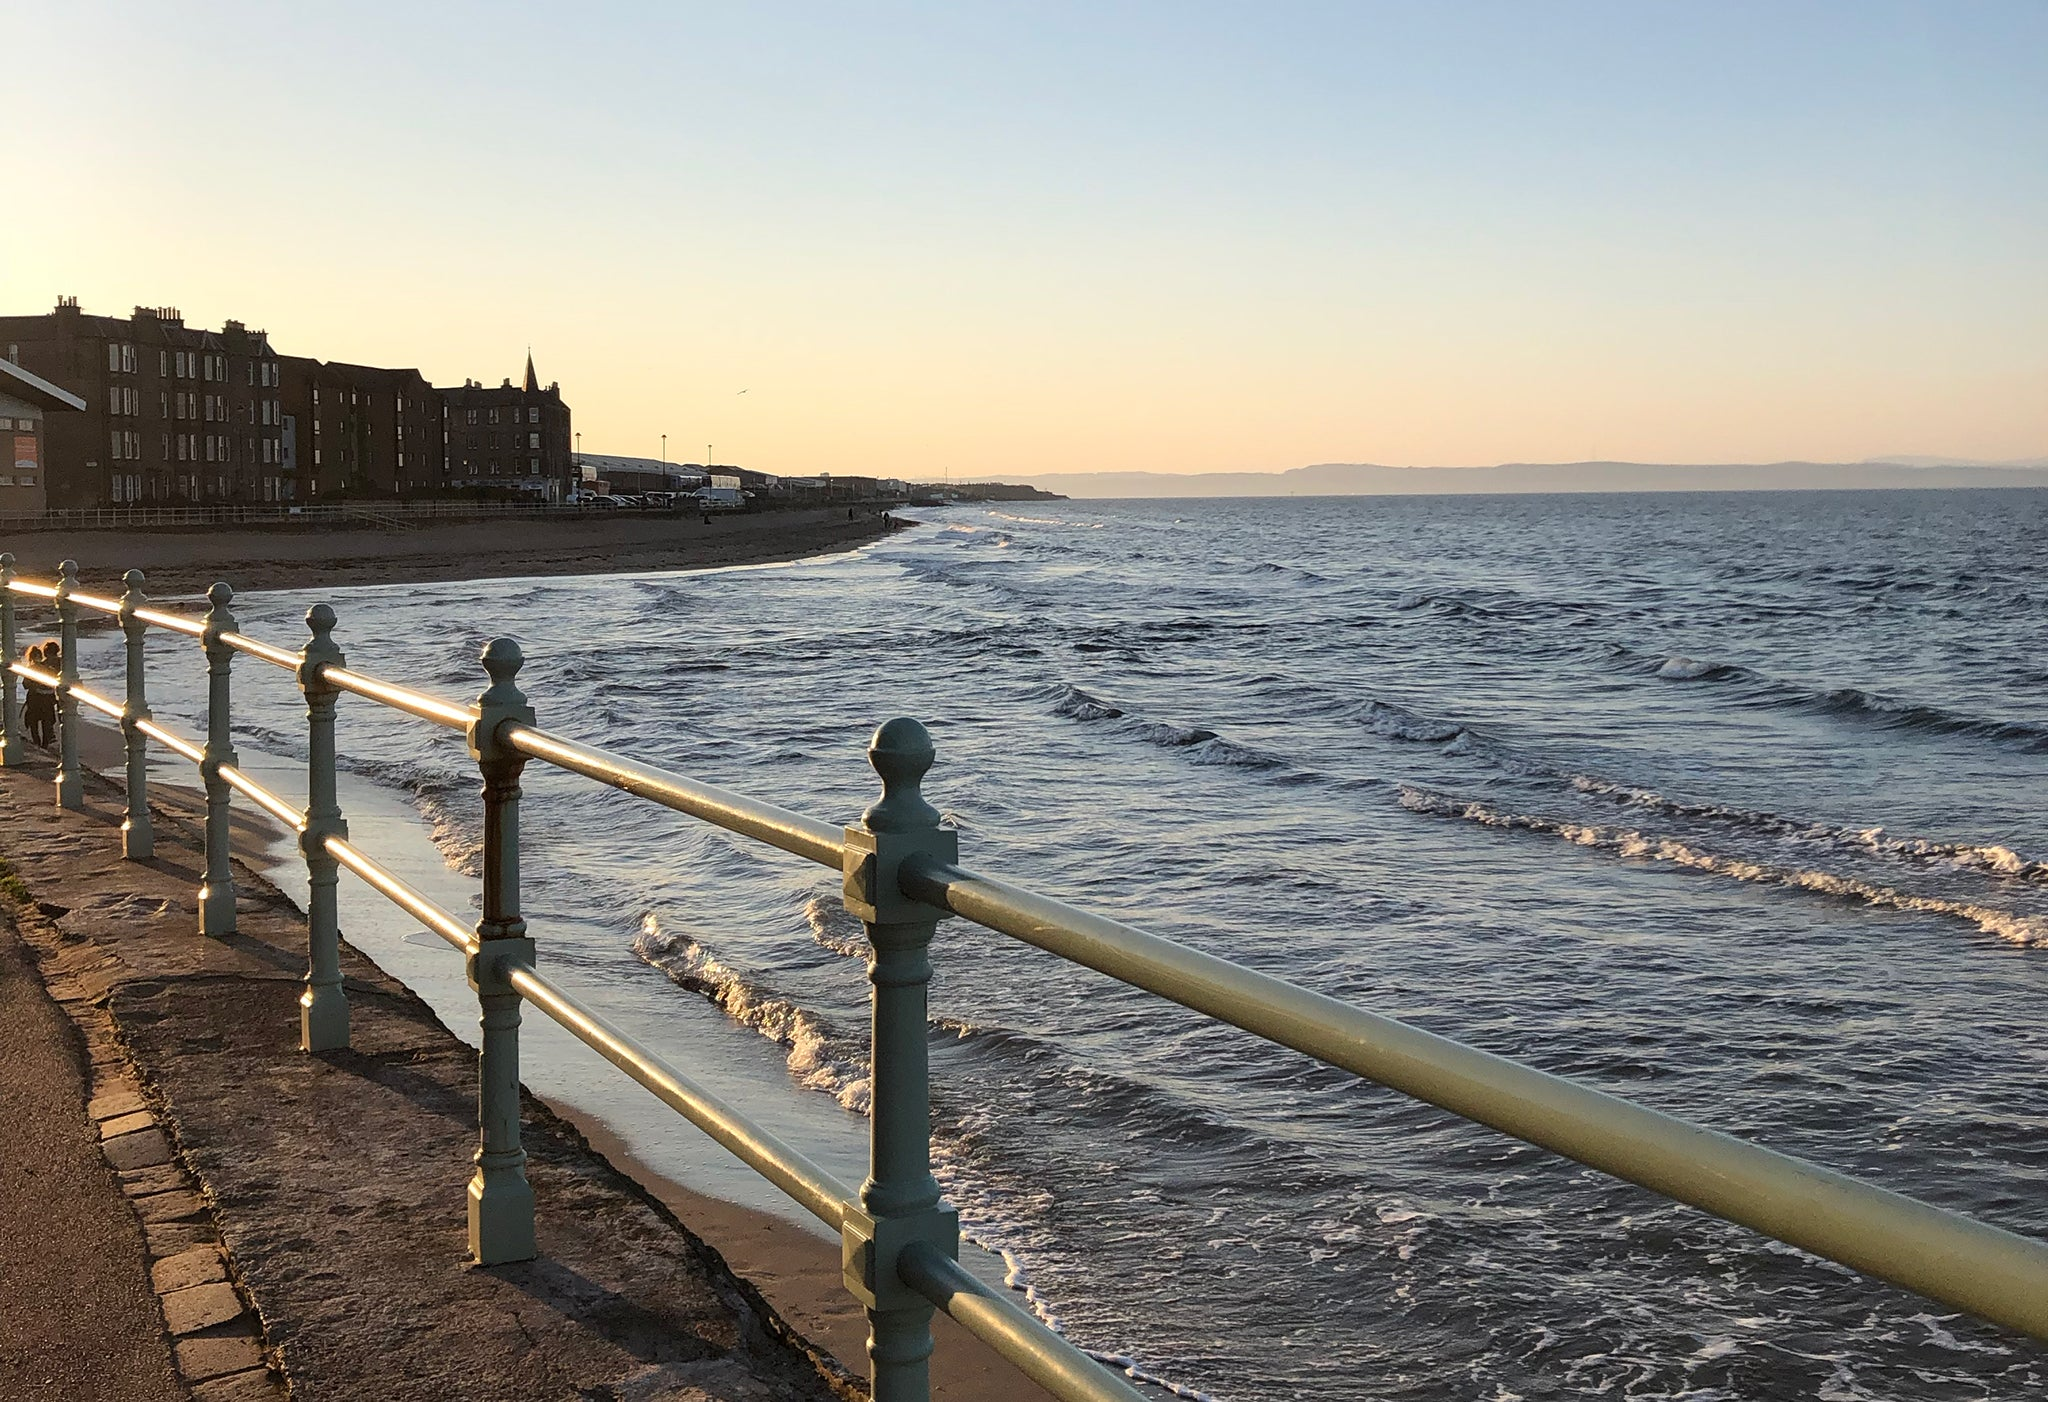 Image of the sea over an iron fence, the light is golden as the sun is about to set.